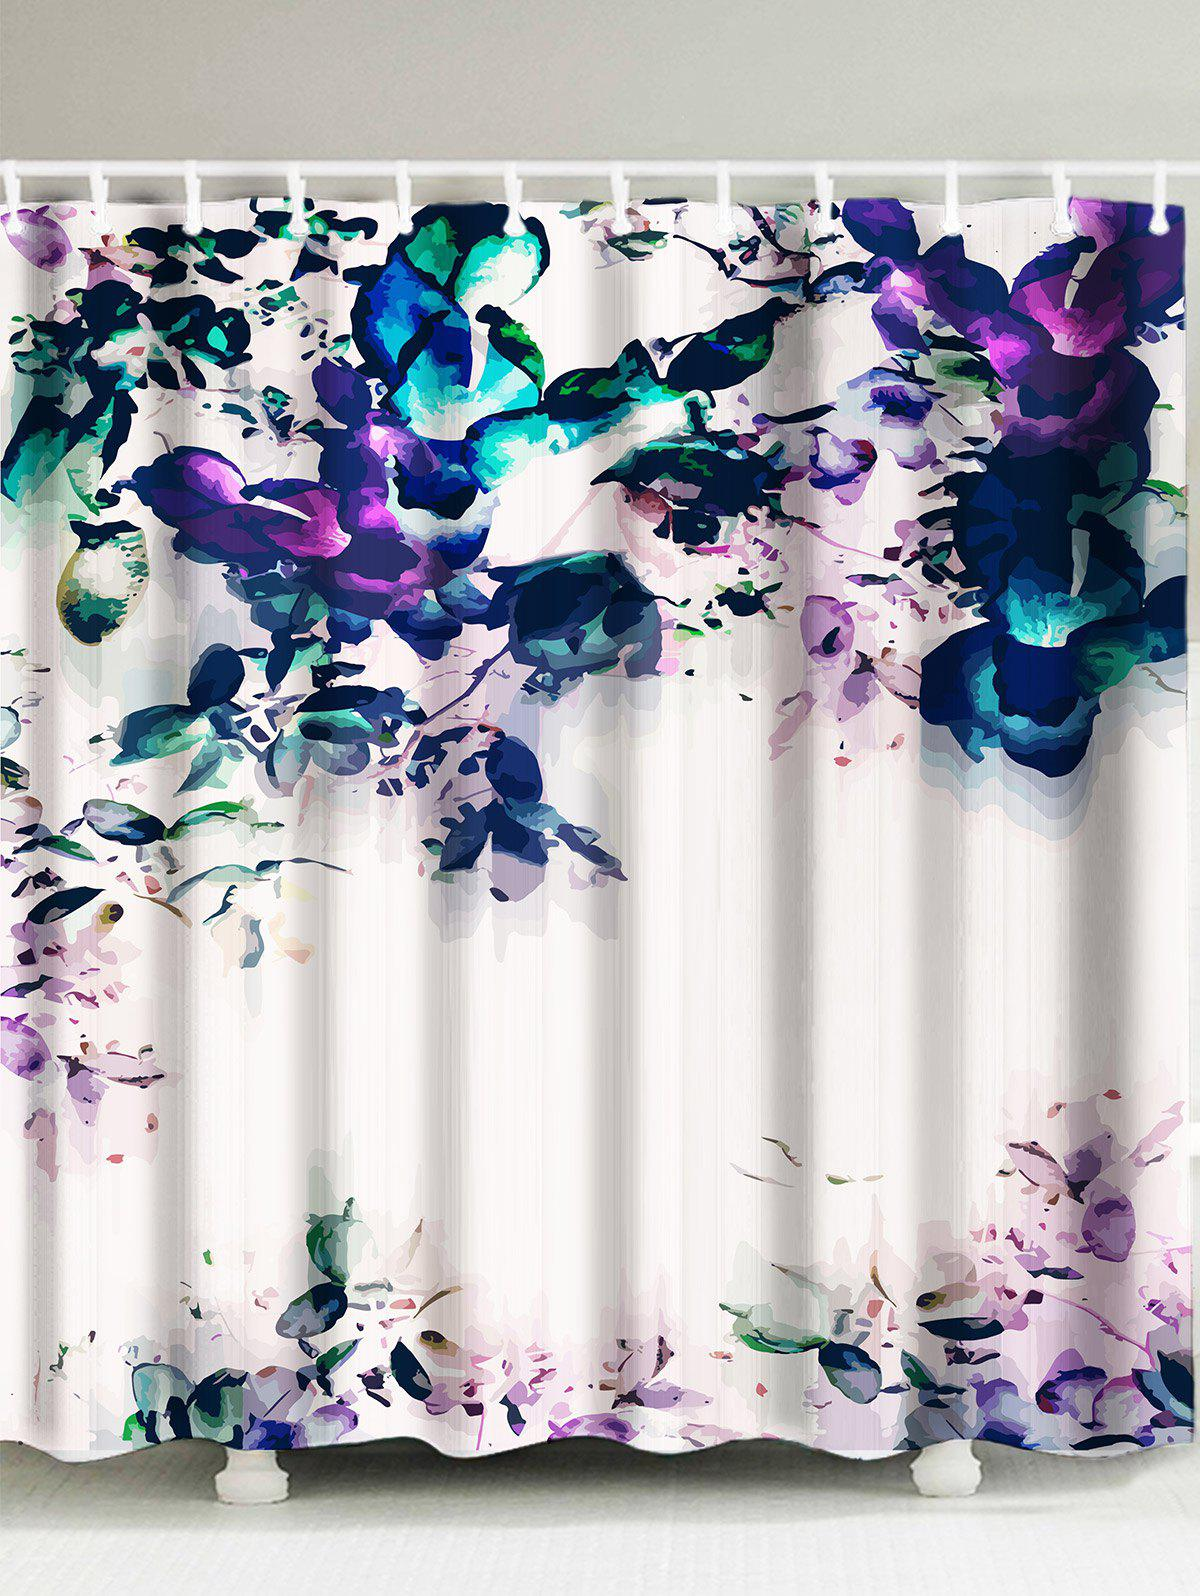 Painting Flower Shower Curtain ink painting dotted waterproof shower curtain